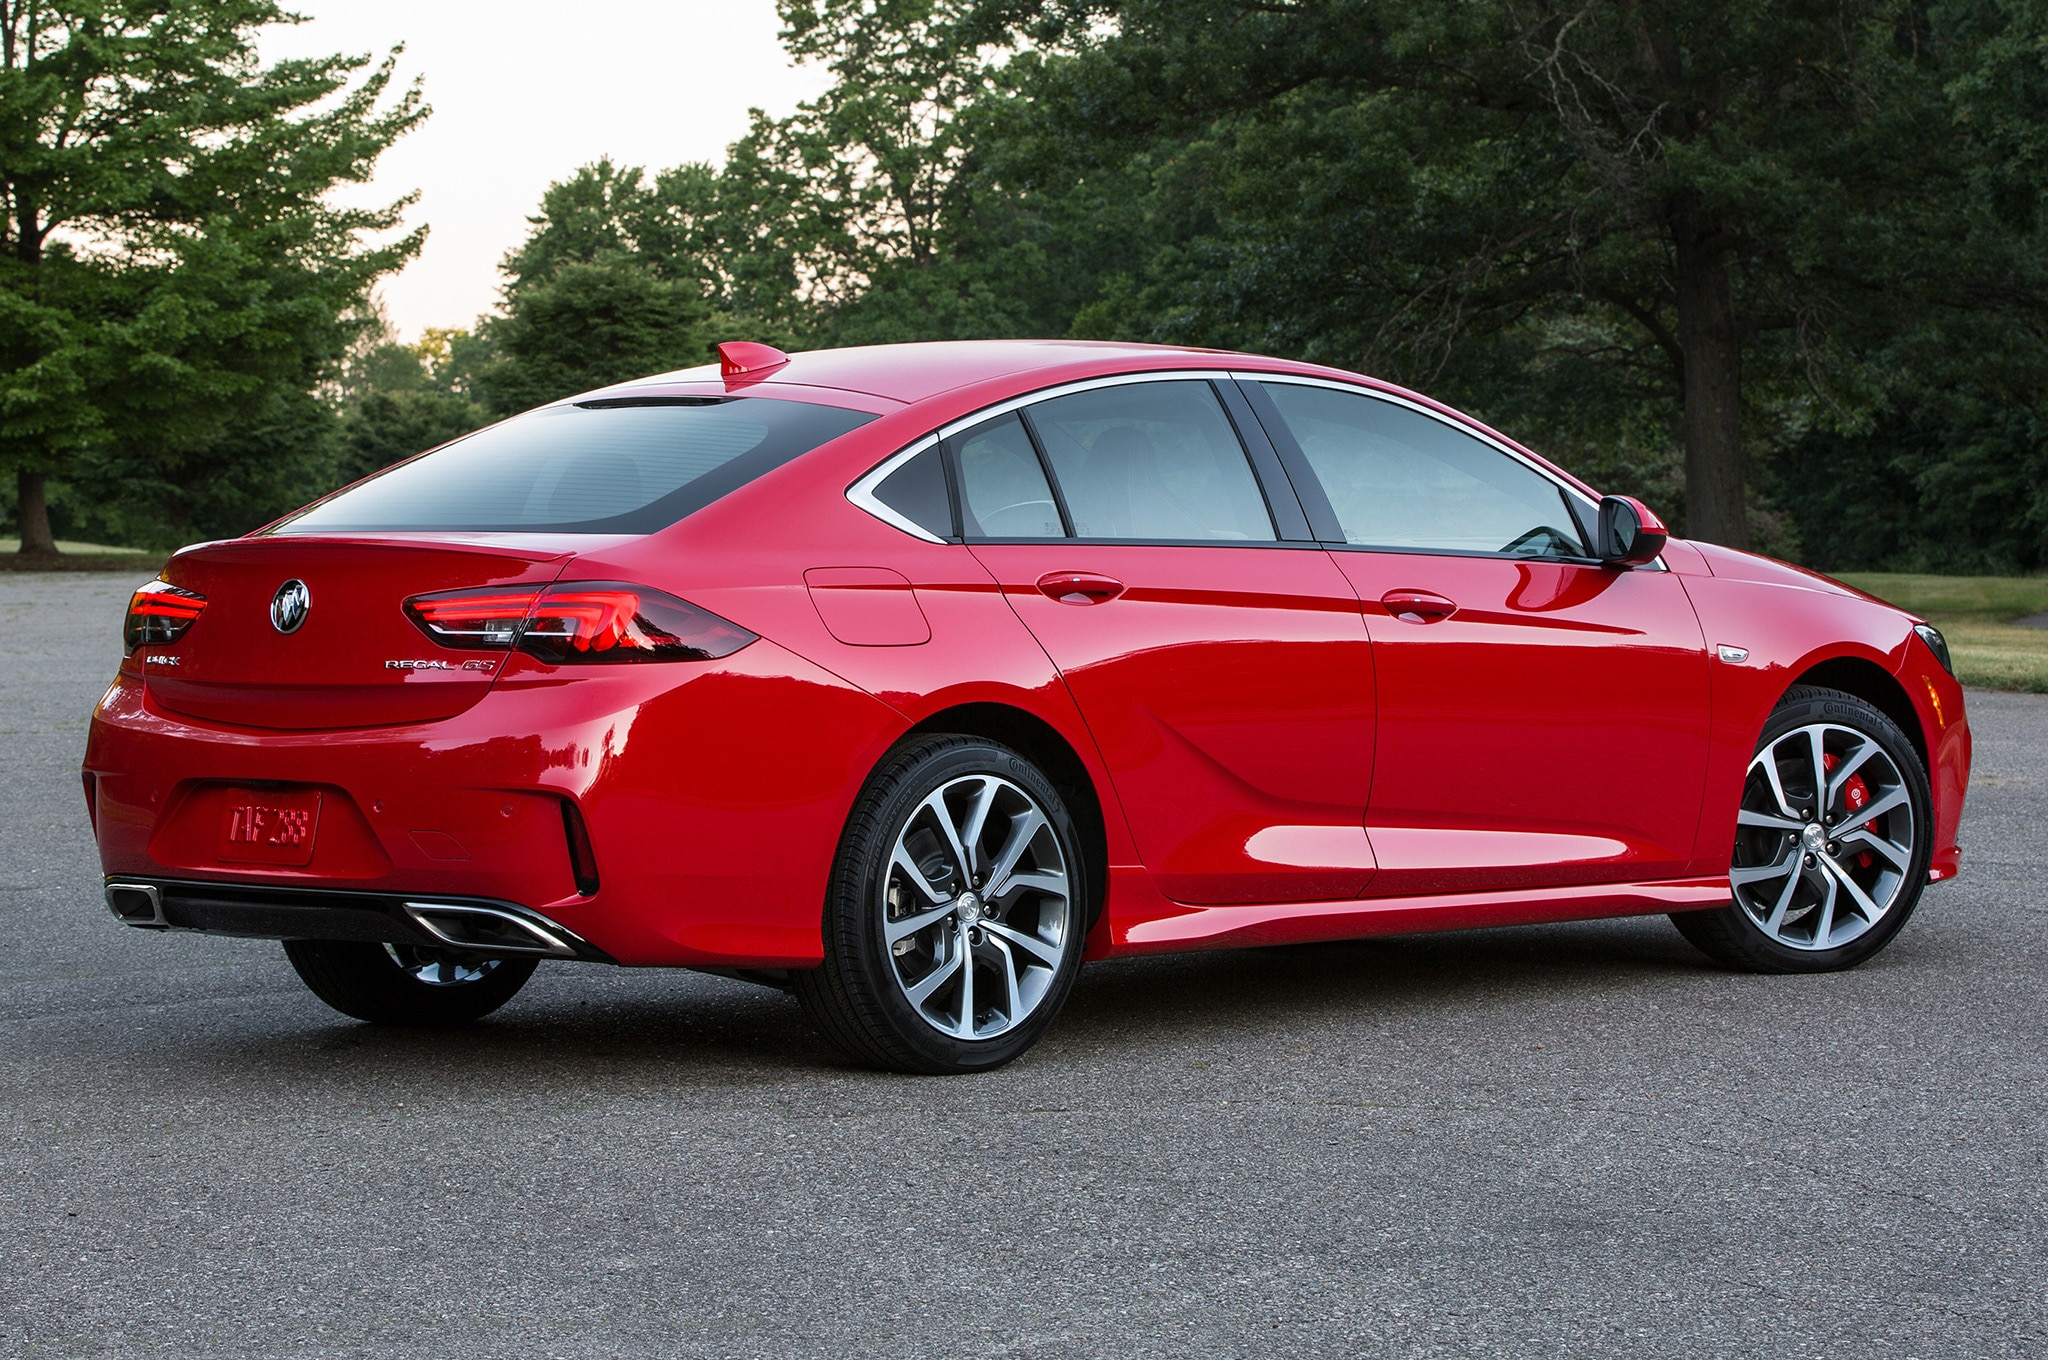 14 Buick Regal Gs >> First Look: 2018 Buick Regal GS | Automobile Magazine